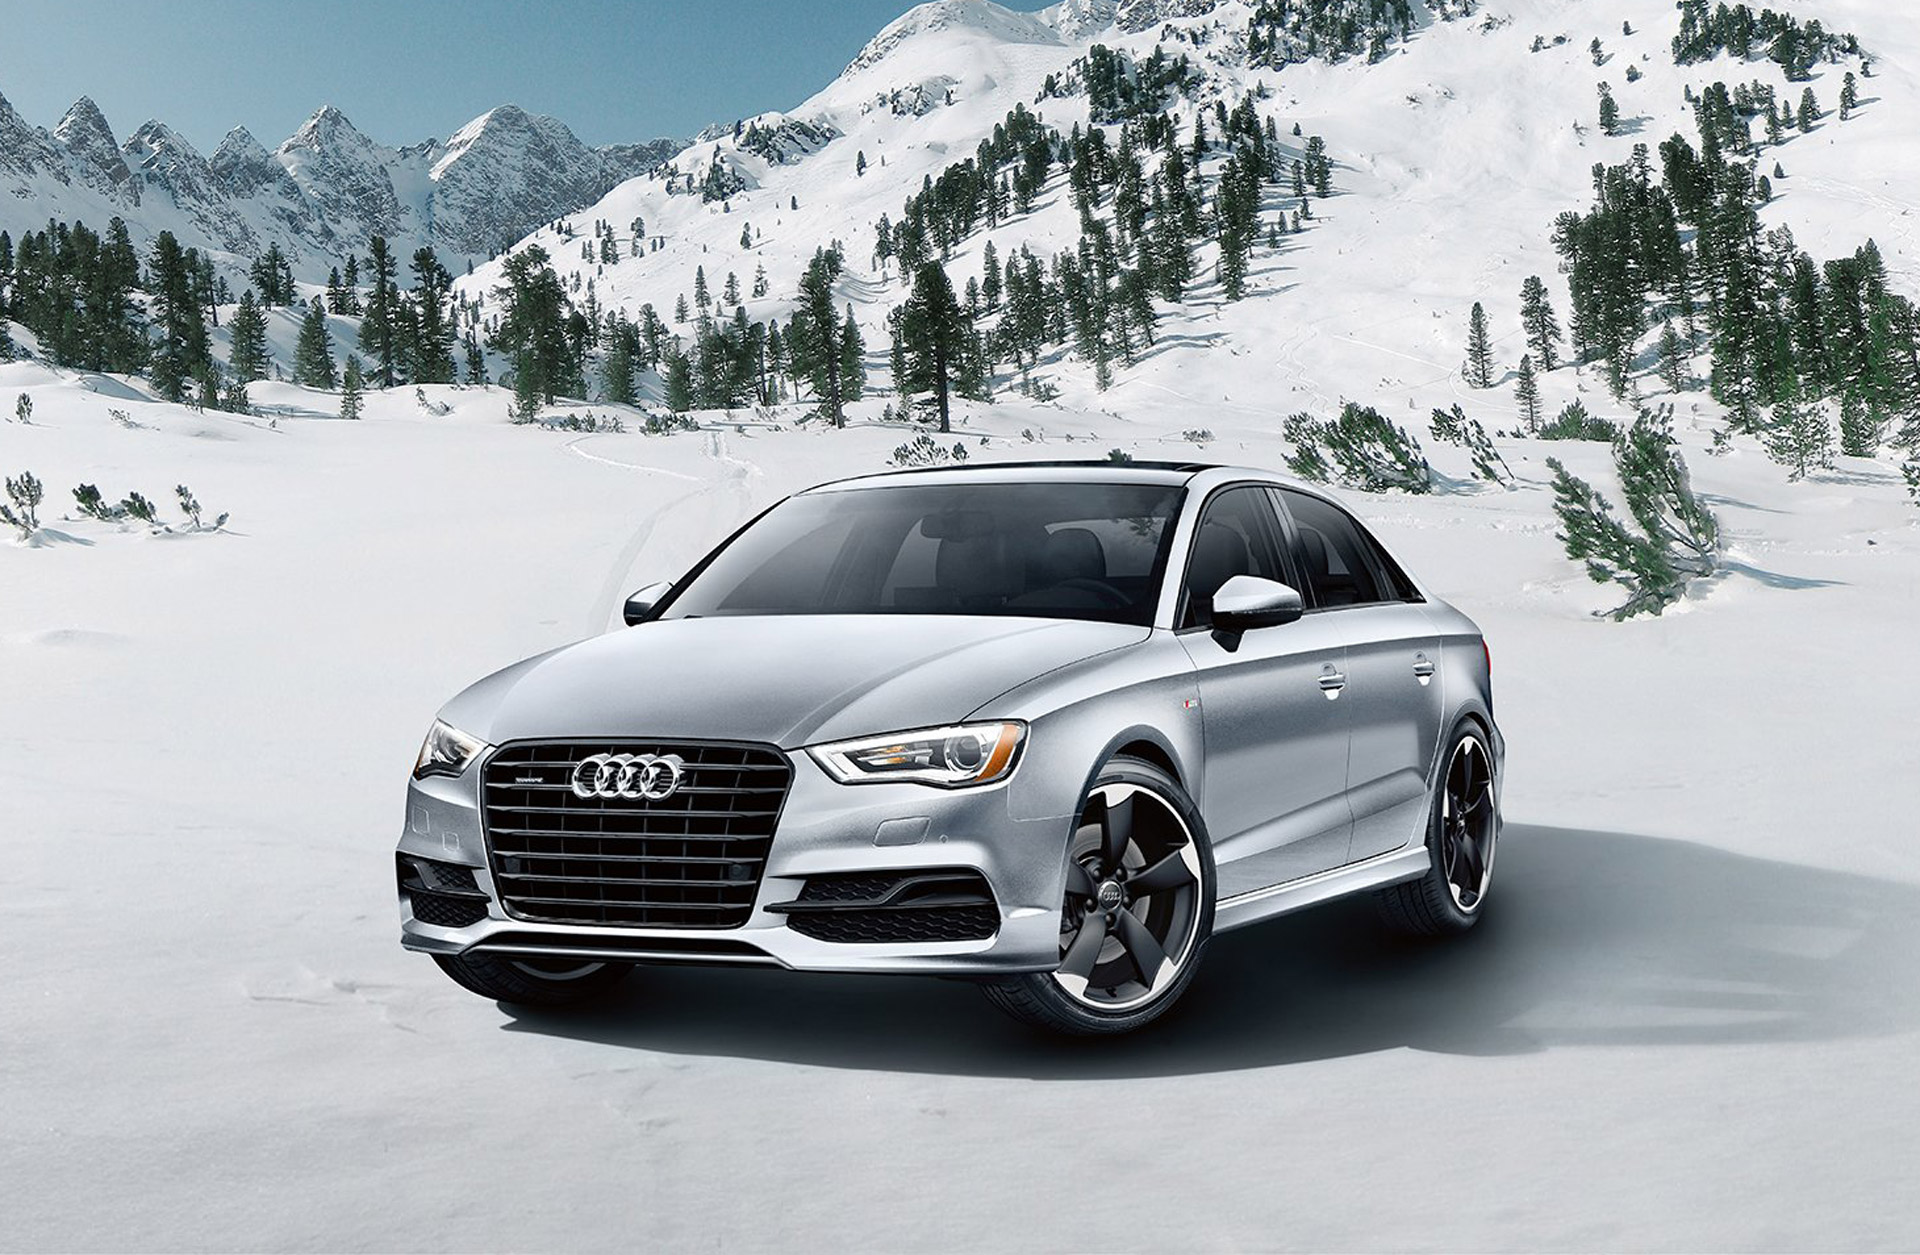 Audi Marks End Of Year With Special Edition Models - Audi base model